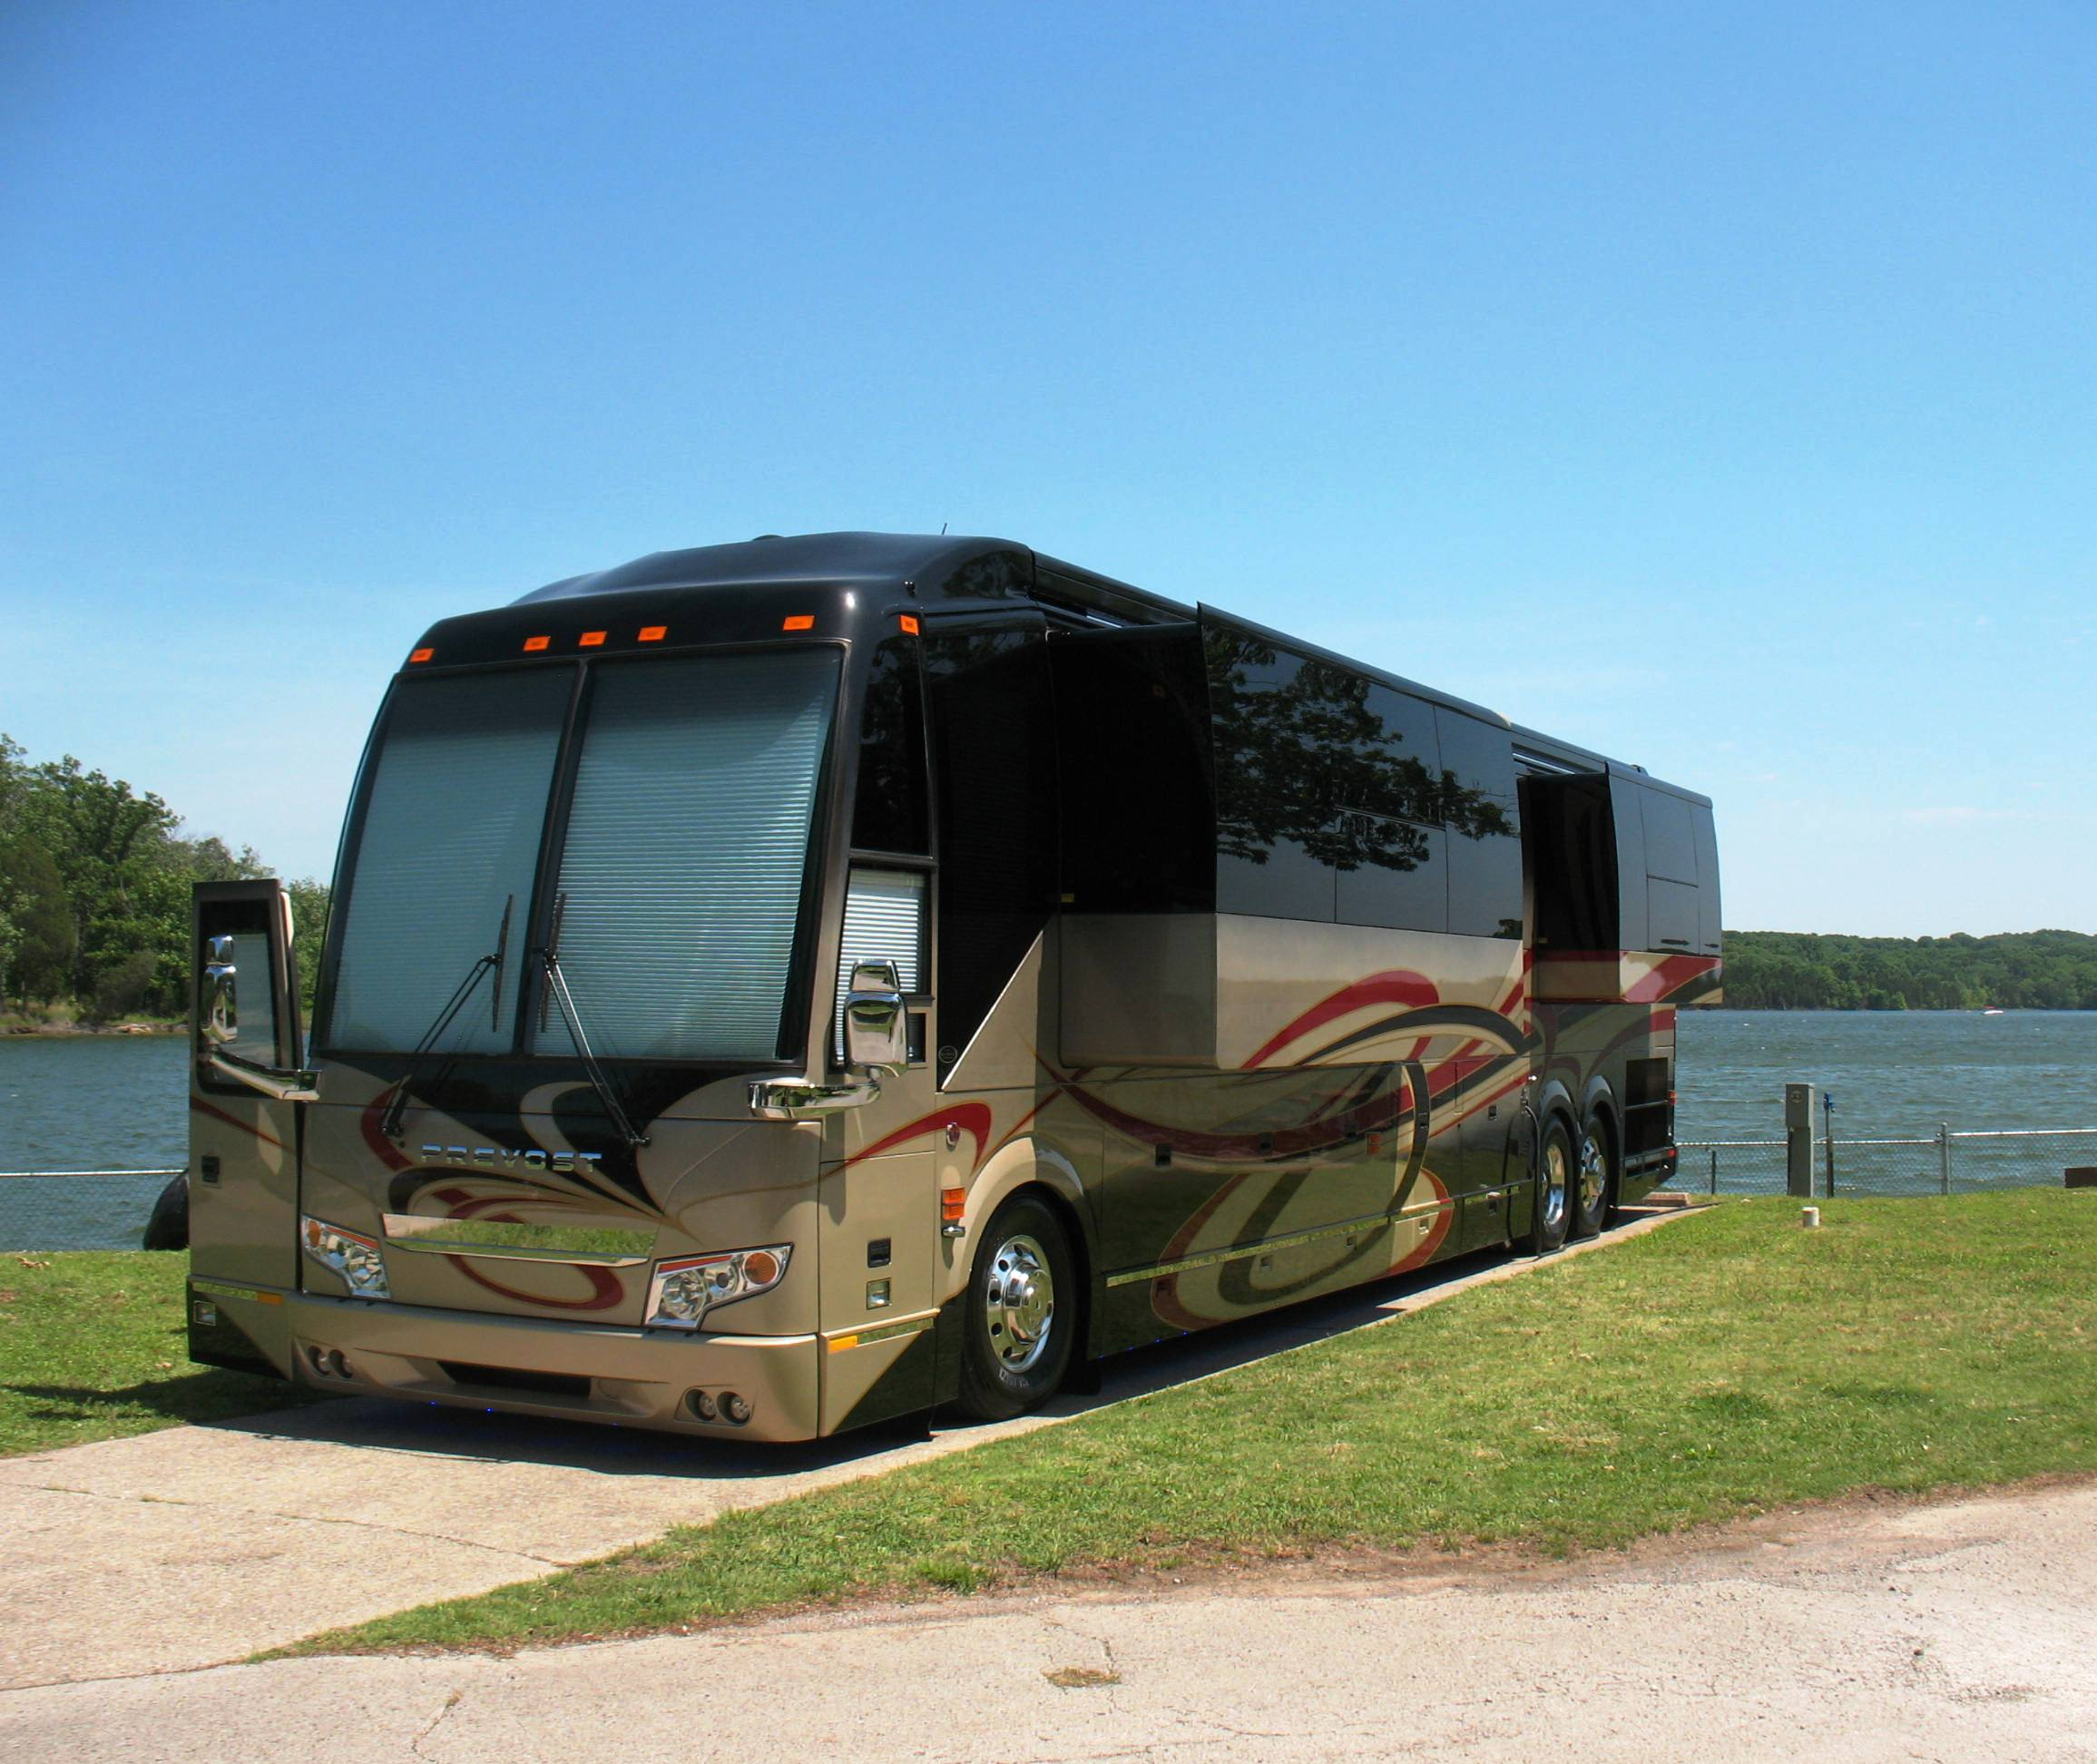 Nashville Shores Lakeside Resort - RV site by lake